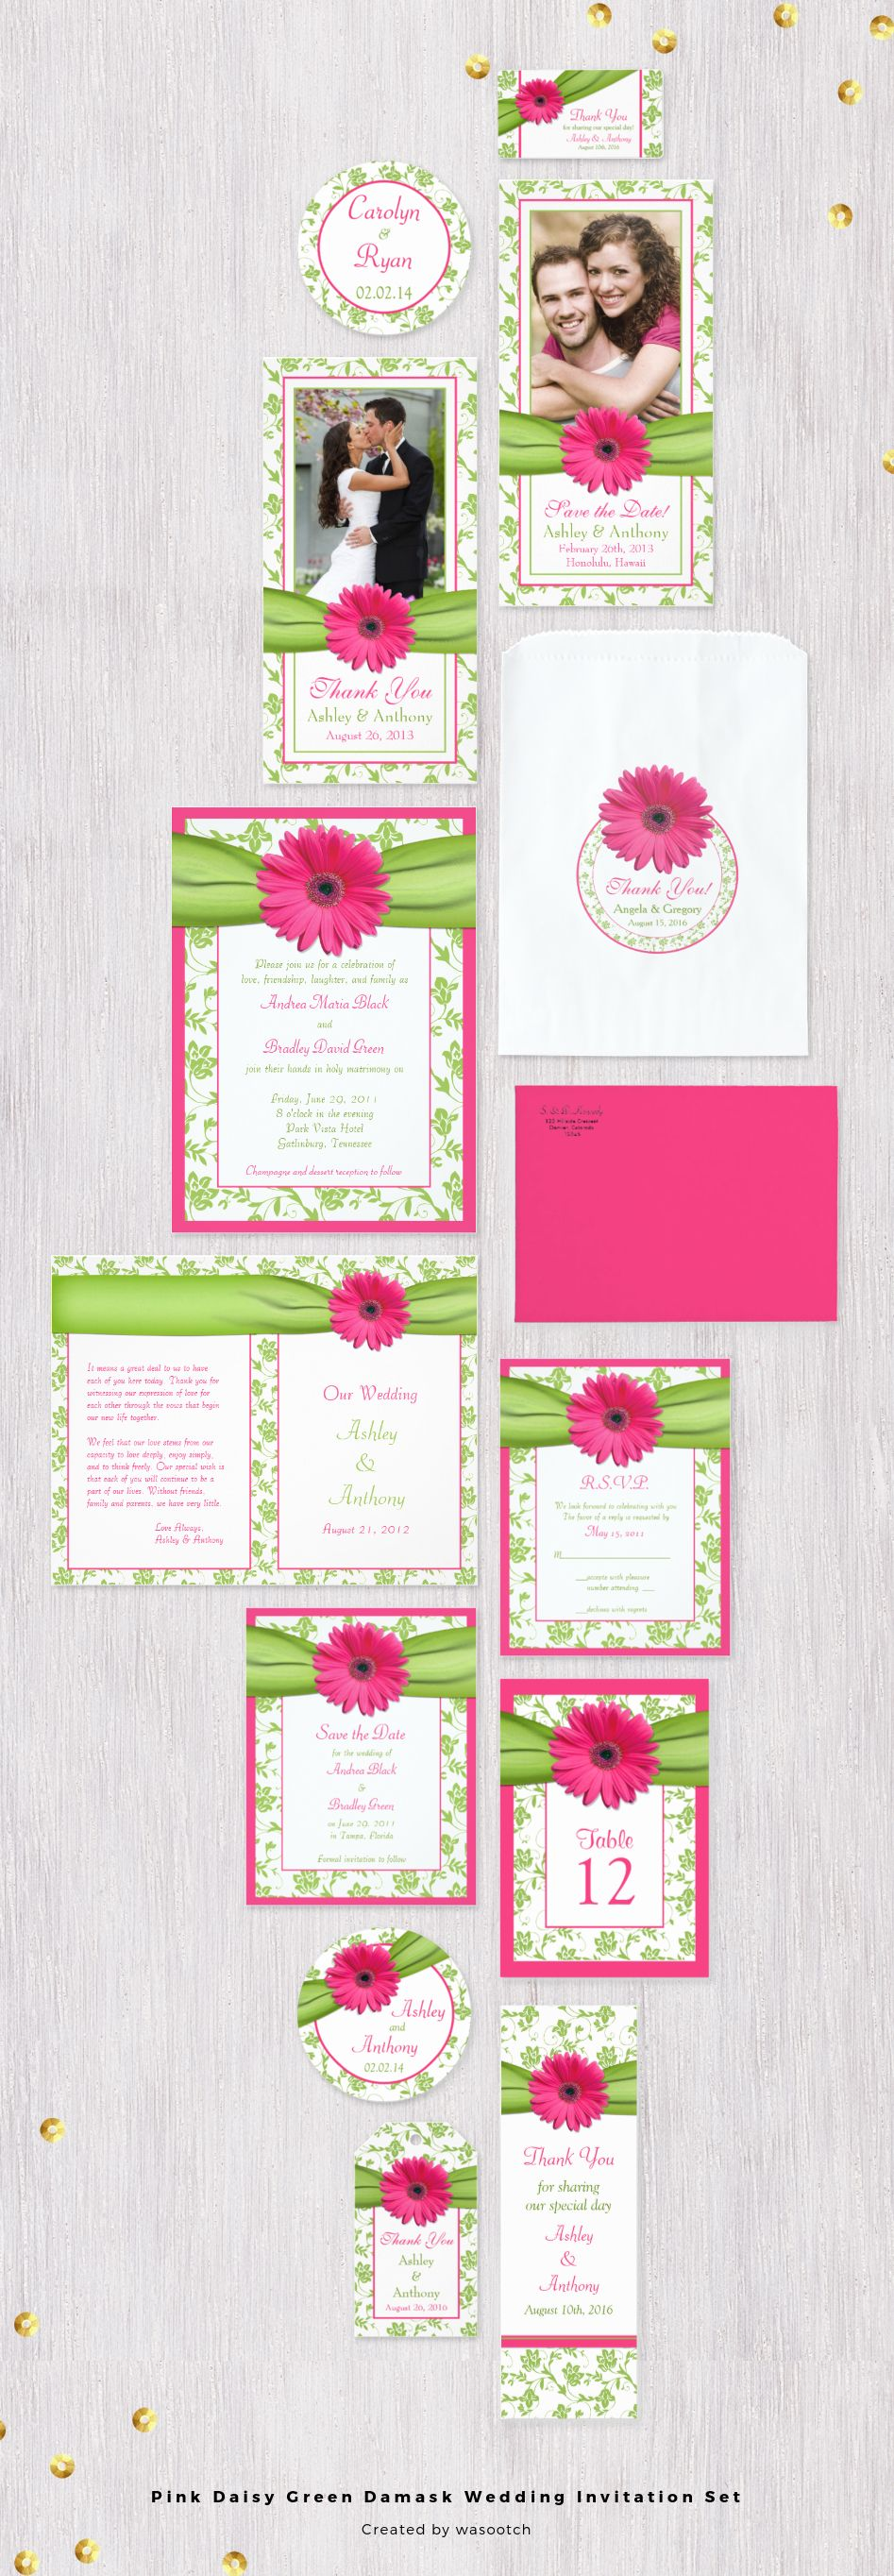 Pink Daisy Green Damask Wedding Invitation Set Pink Bridal Shower Damask Wedding Invitation Trendy Wedding Invitations